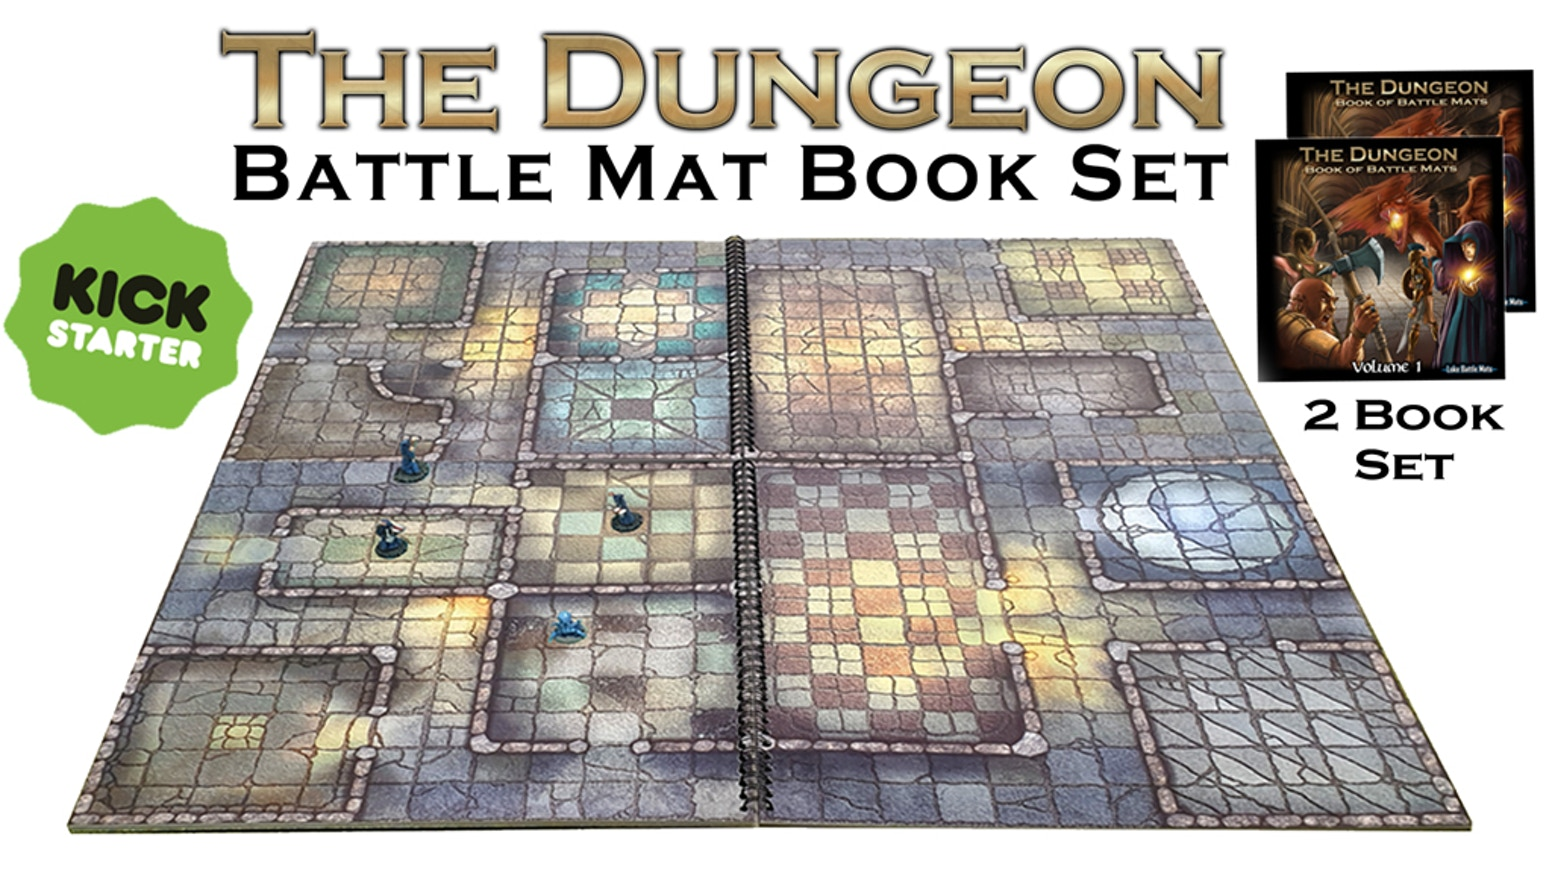 The Dungeon - Set of 2 Modular Books of Battle Mats for RPG ... on report book, home book, photograph book, globe book, search book, man book, model book, histroy book, poster book, select book, tut book, water book, transportation book, game book, script book, notes book, business book, address book, library book, atlas book,